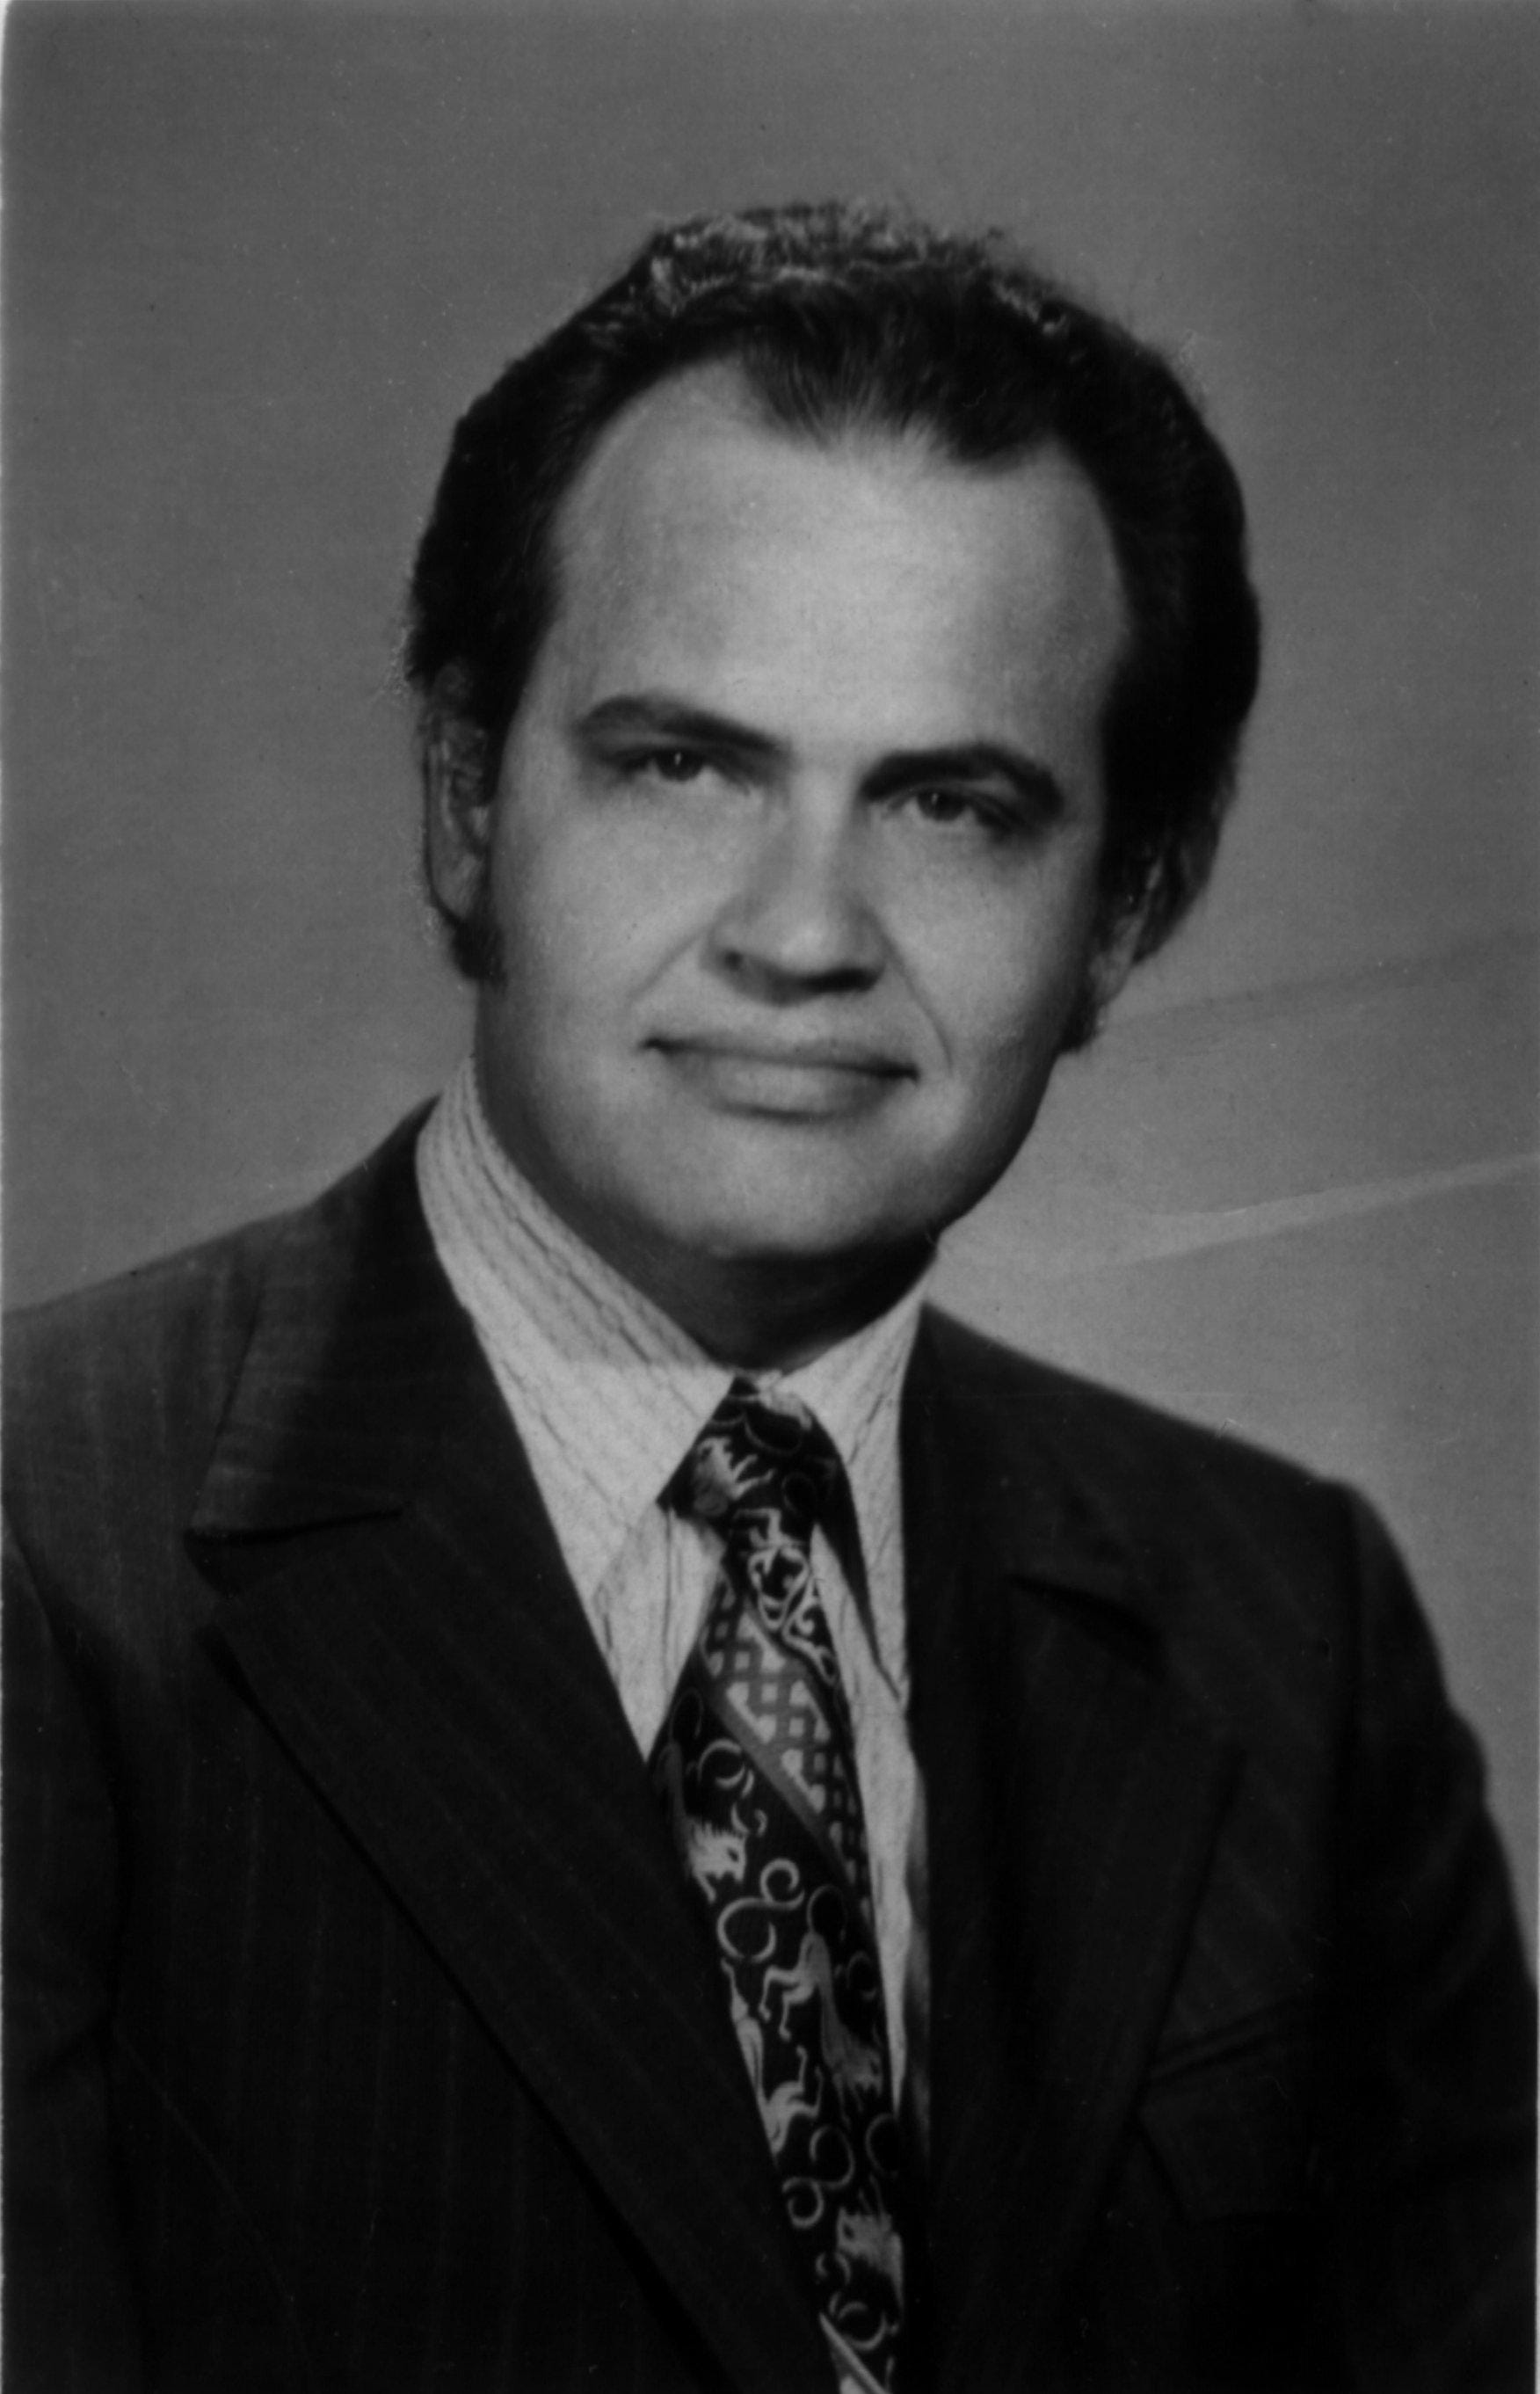 fred dalton thompson bio